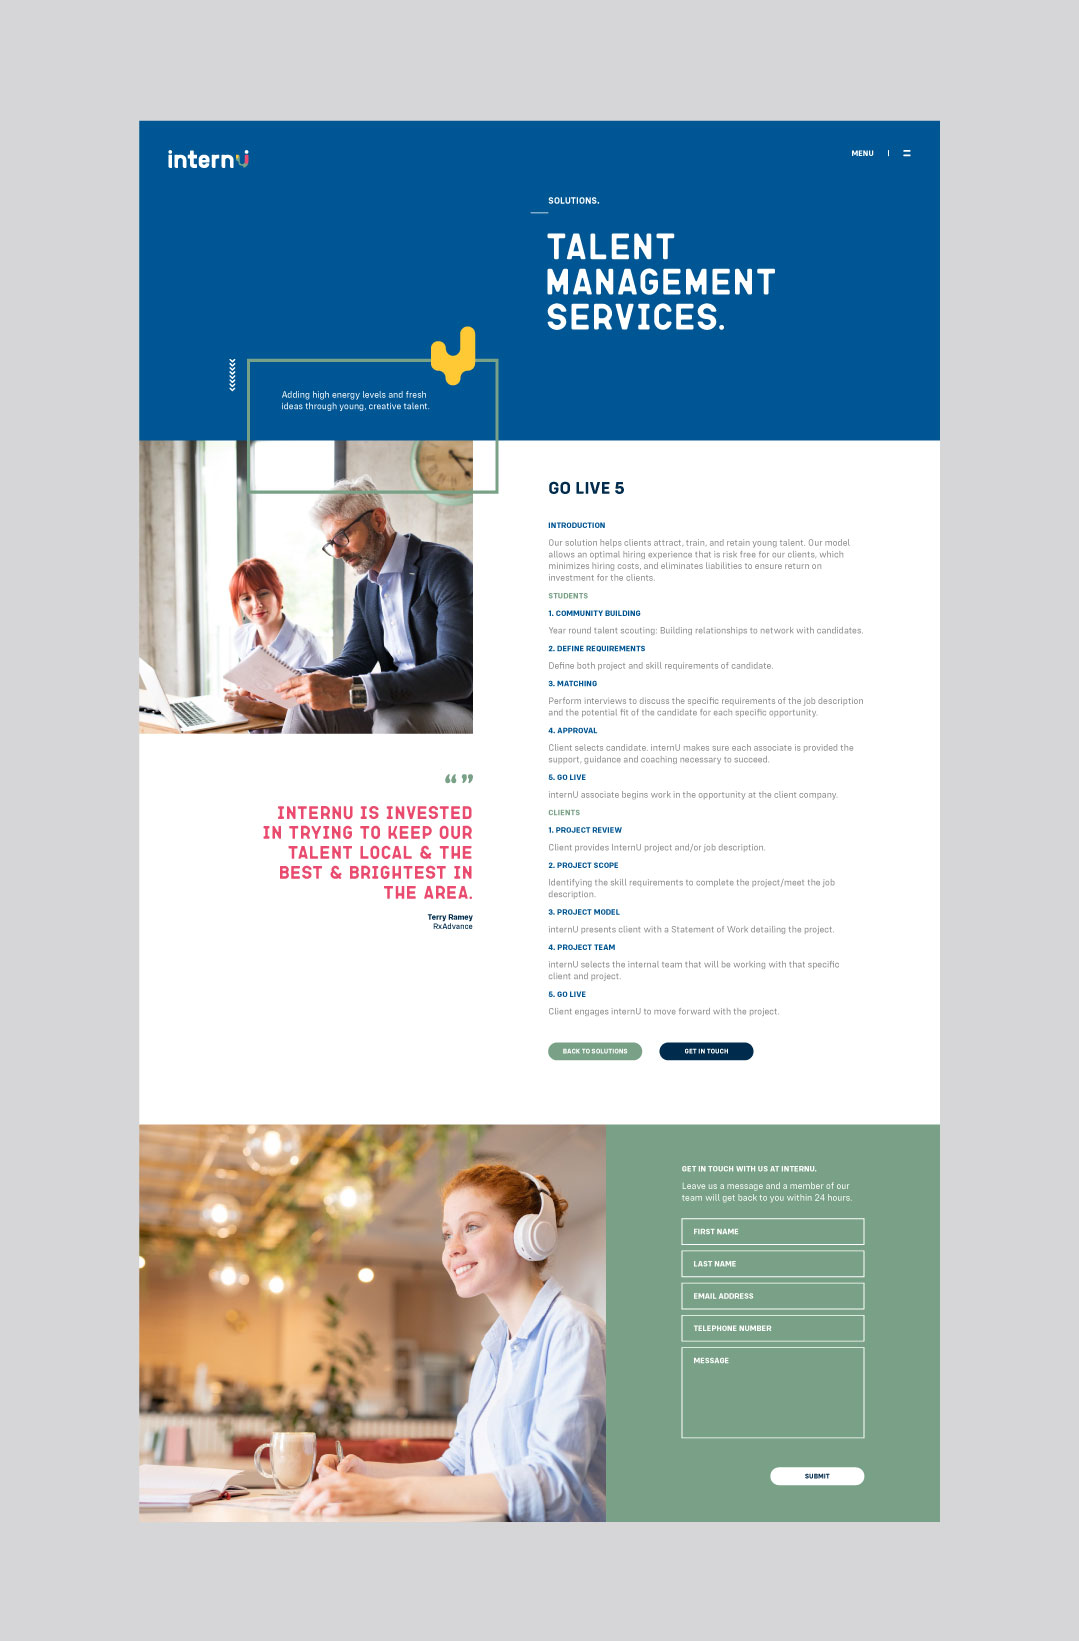 internU website showing the solutions page design.